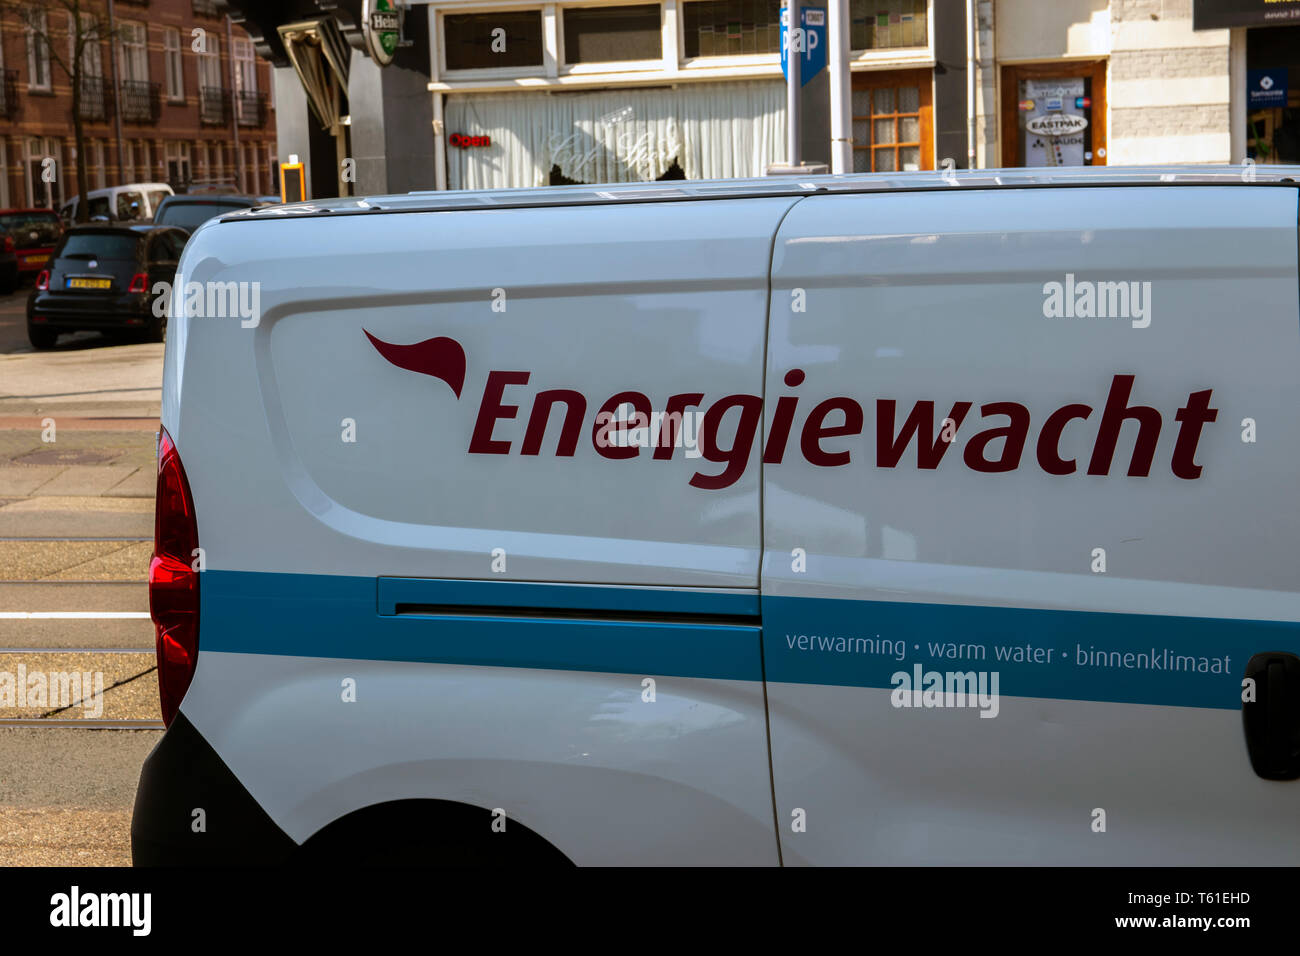 Energiewacht Company Car At Amsterdam The Netherlands 2019 Stock